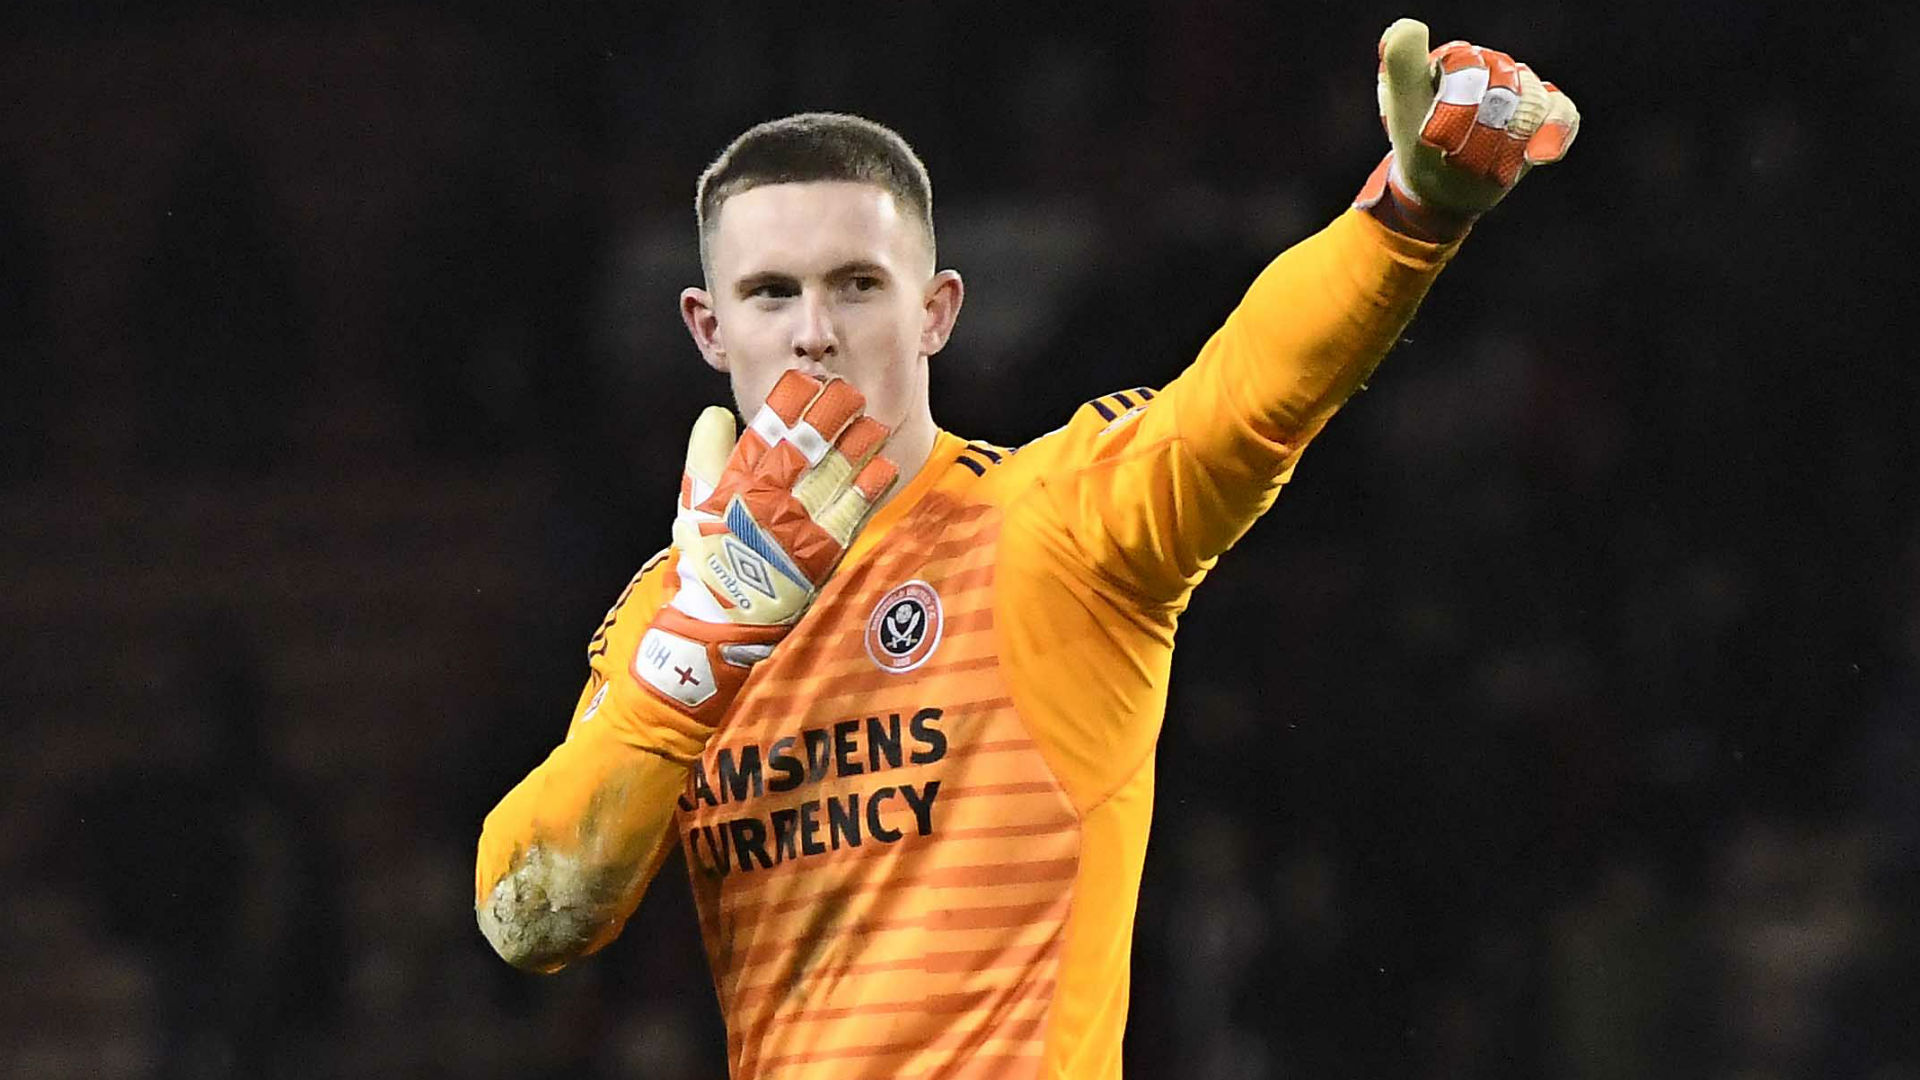 Henderson believes he should be playing for Man Utd as De Gea exit talk rumbles on